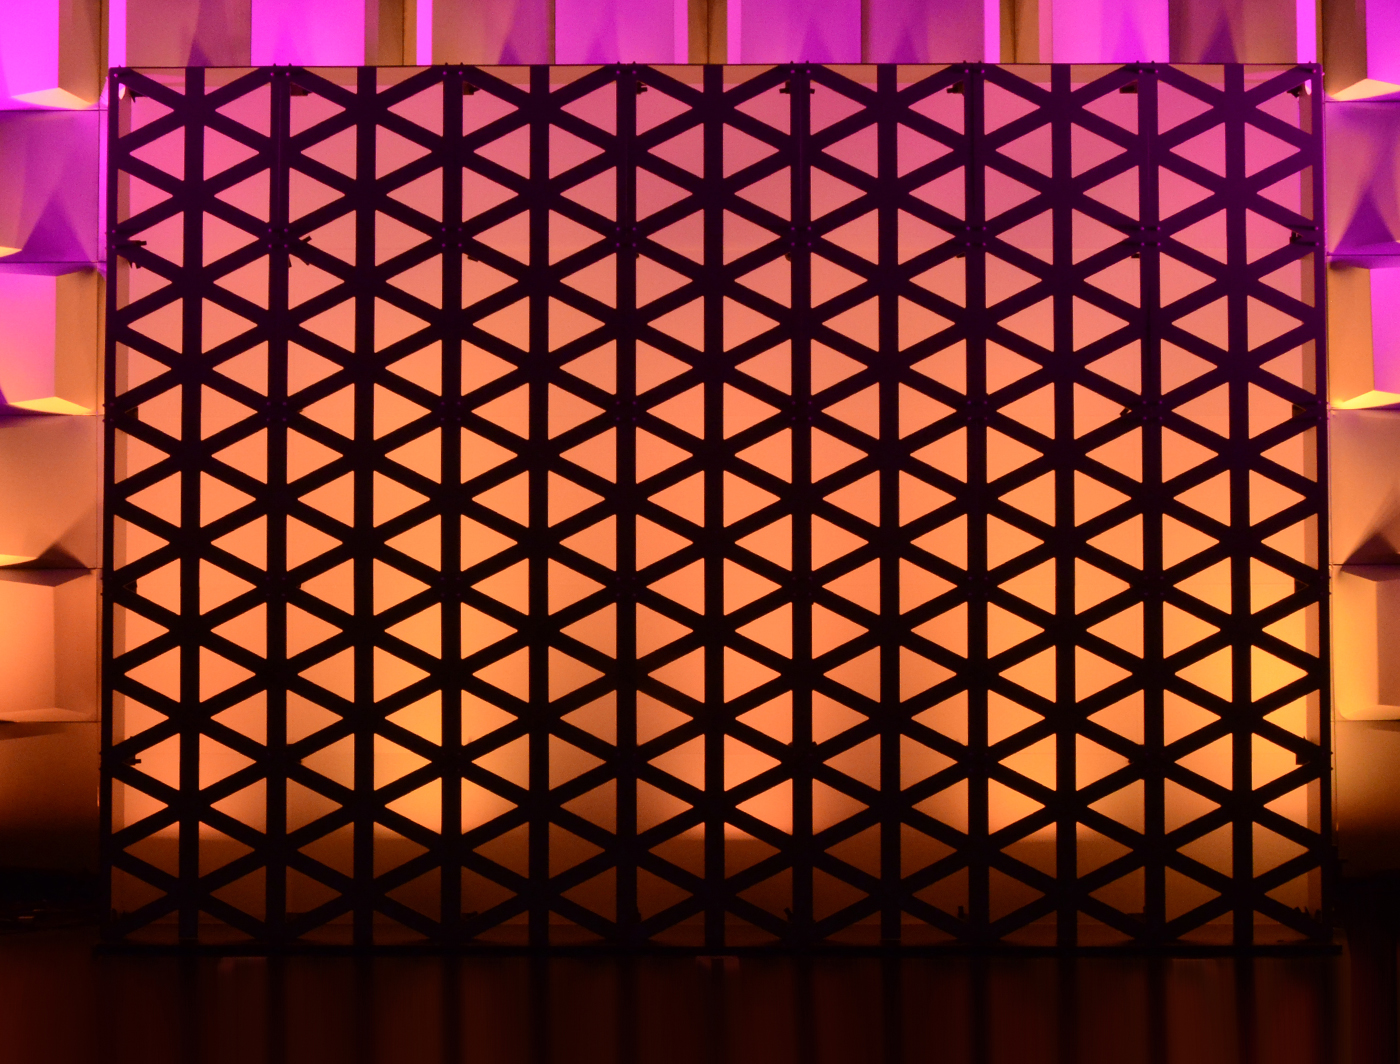 Triad SuperWall adds a beautiful pattern to this stage